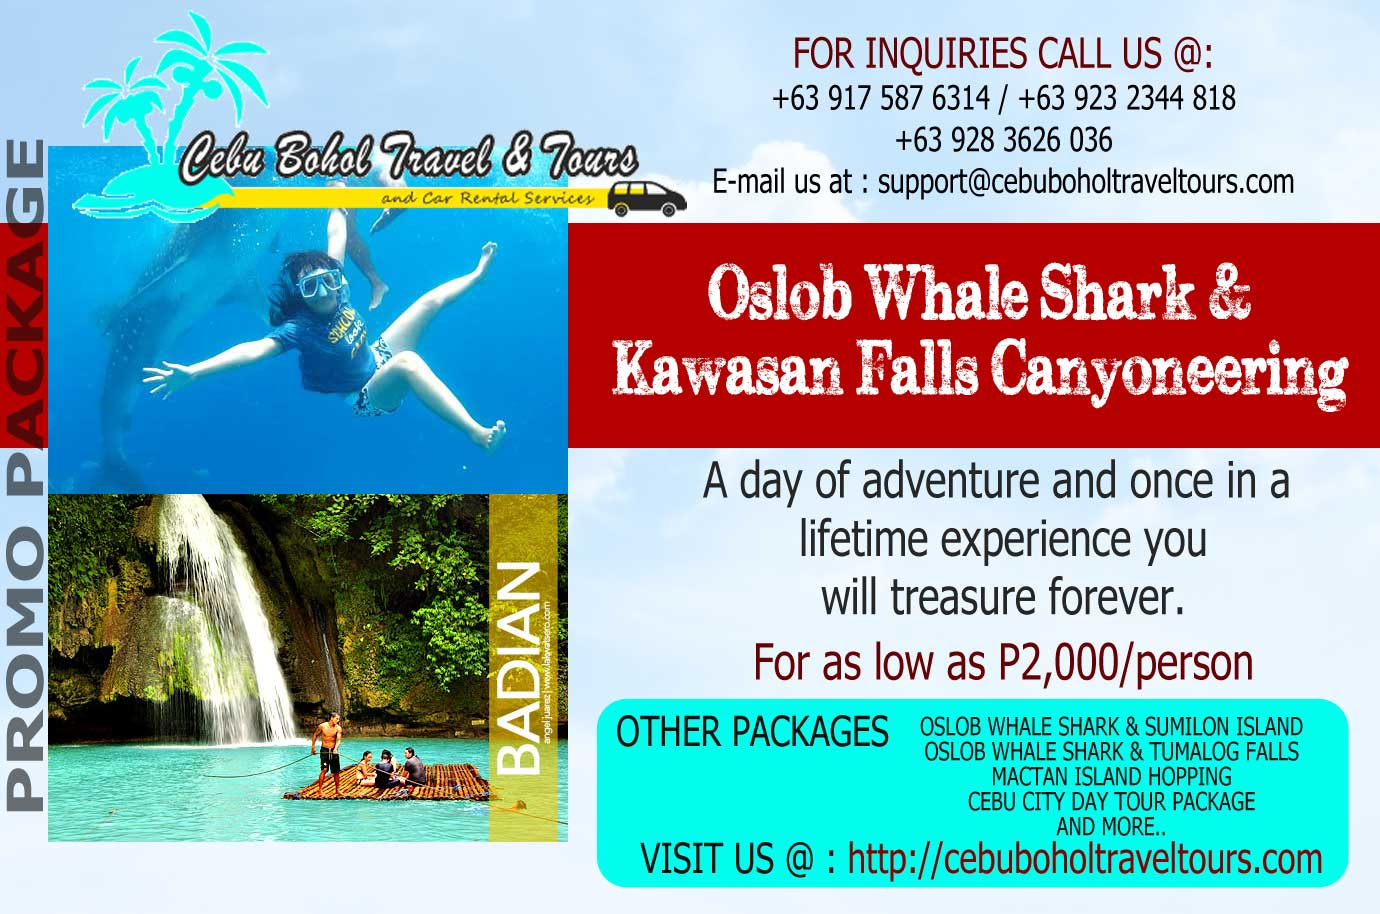 Kawasan Canyoneering and Oslbo Whale Watching